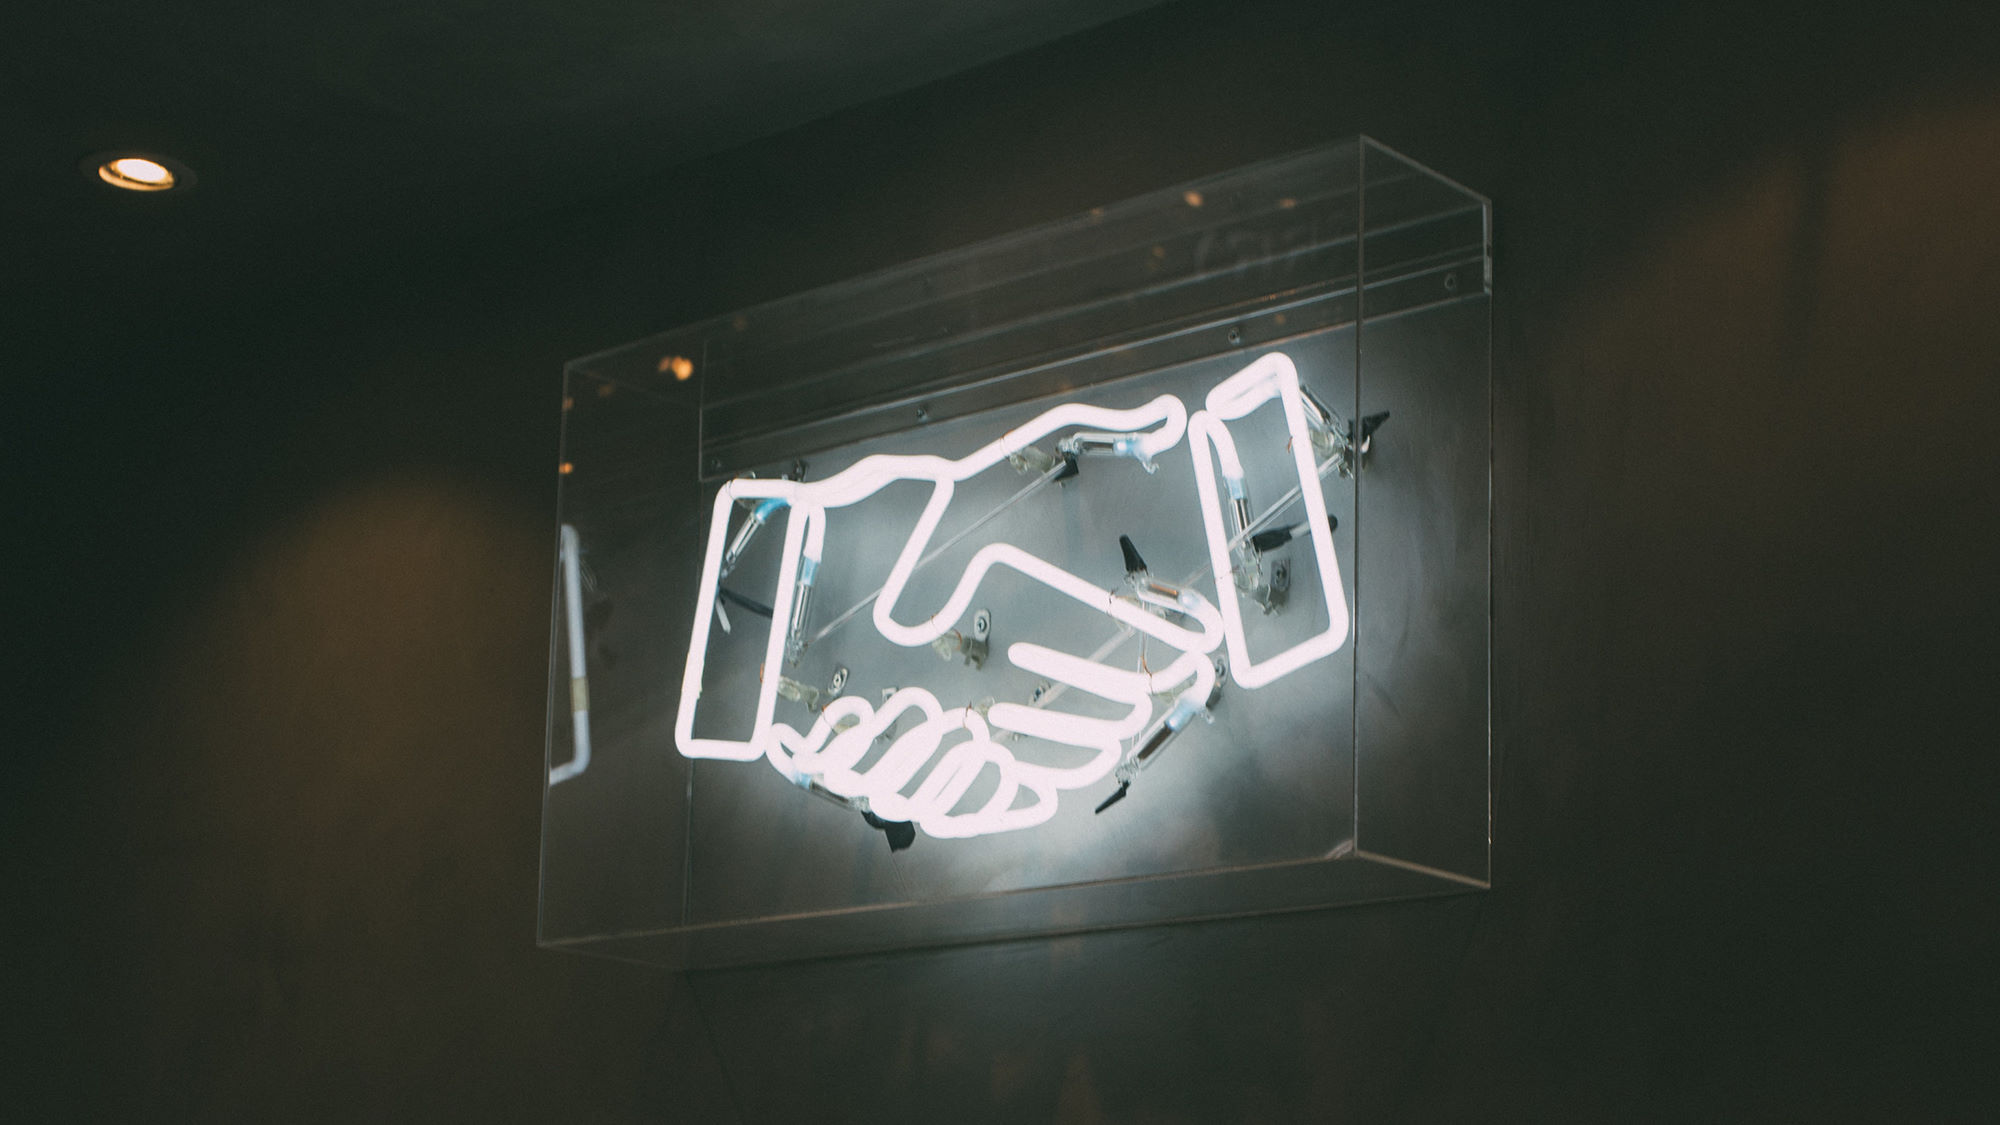 A neon sign of two hands shaking each other